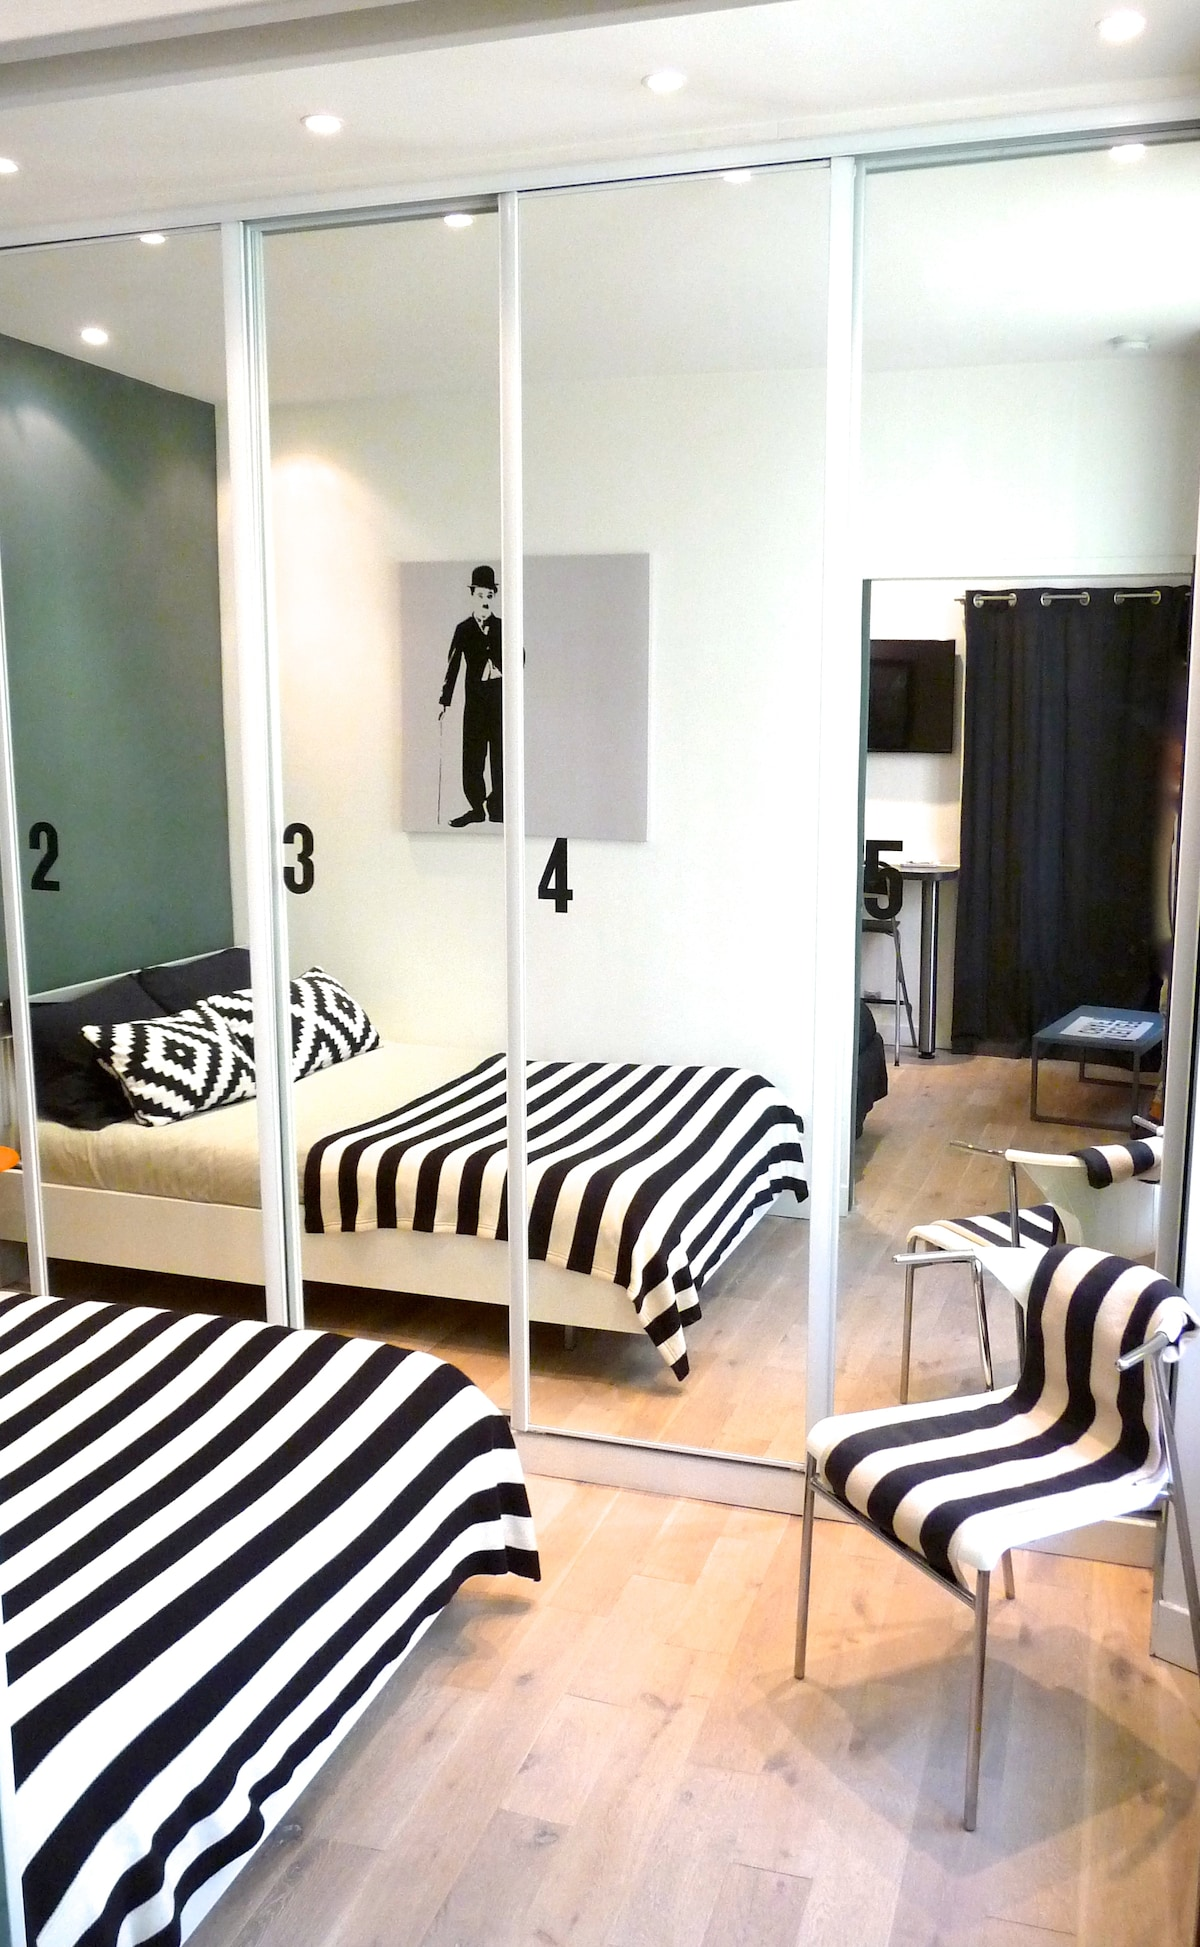 Separated Bedroom with a spacious wardrobe and mirrors.